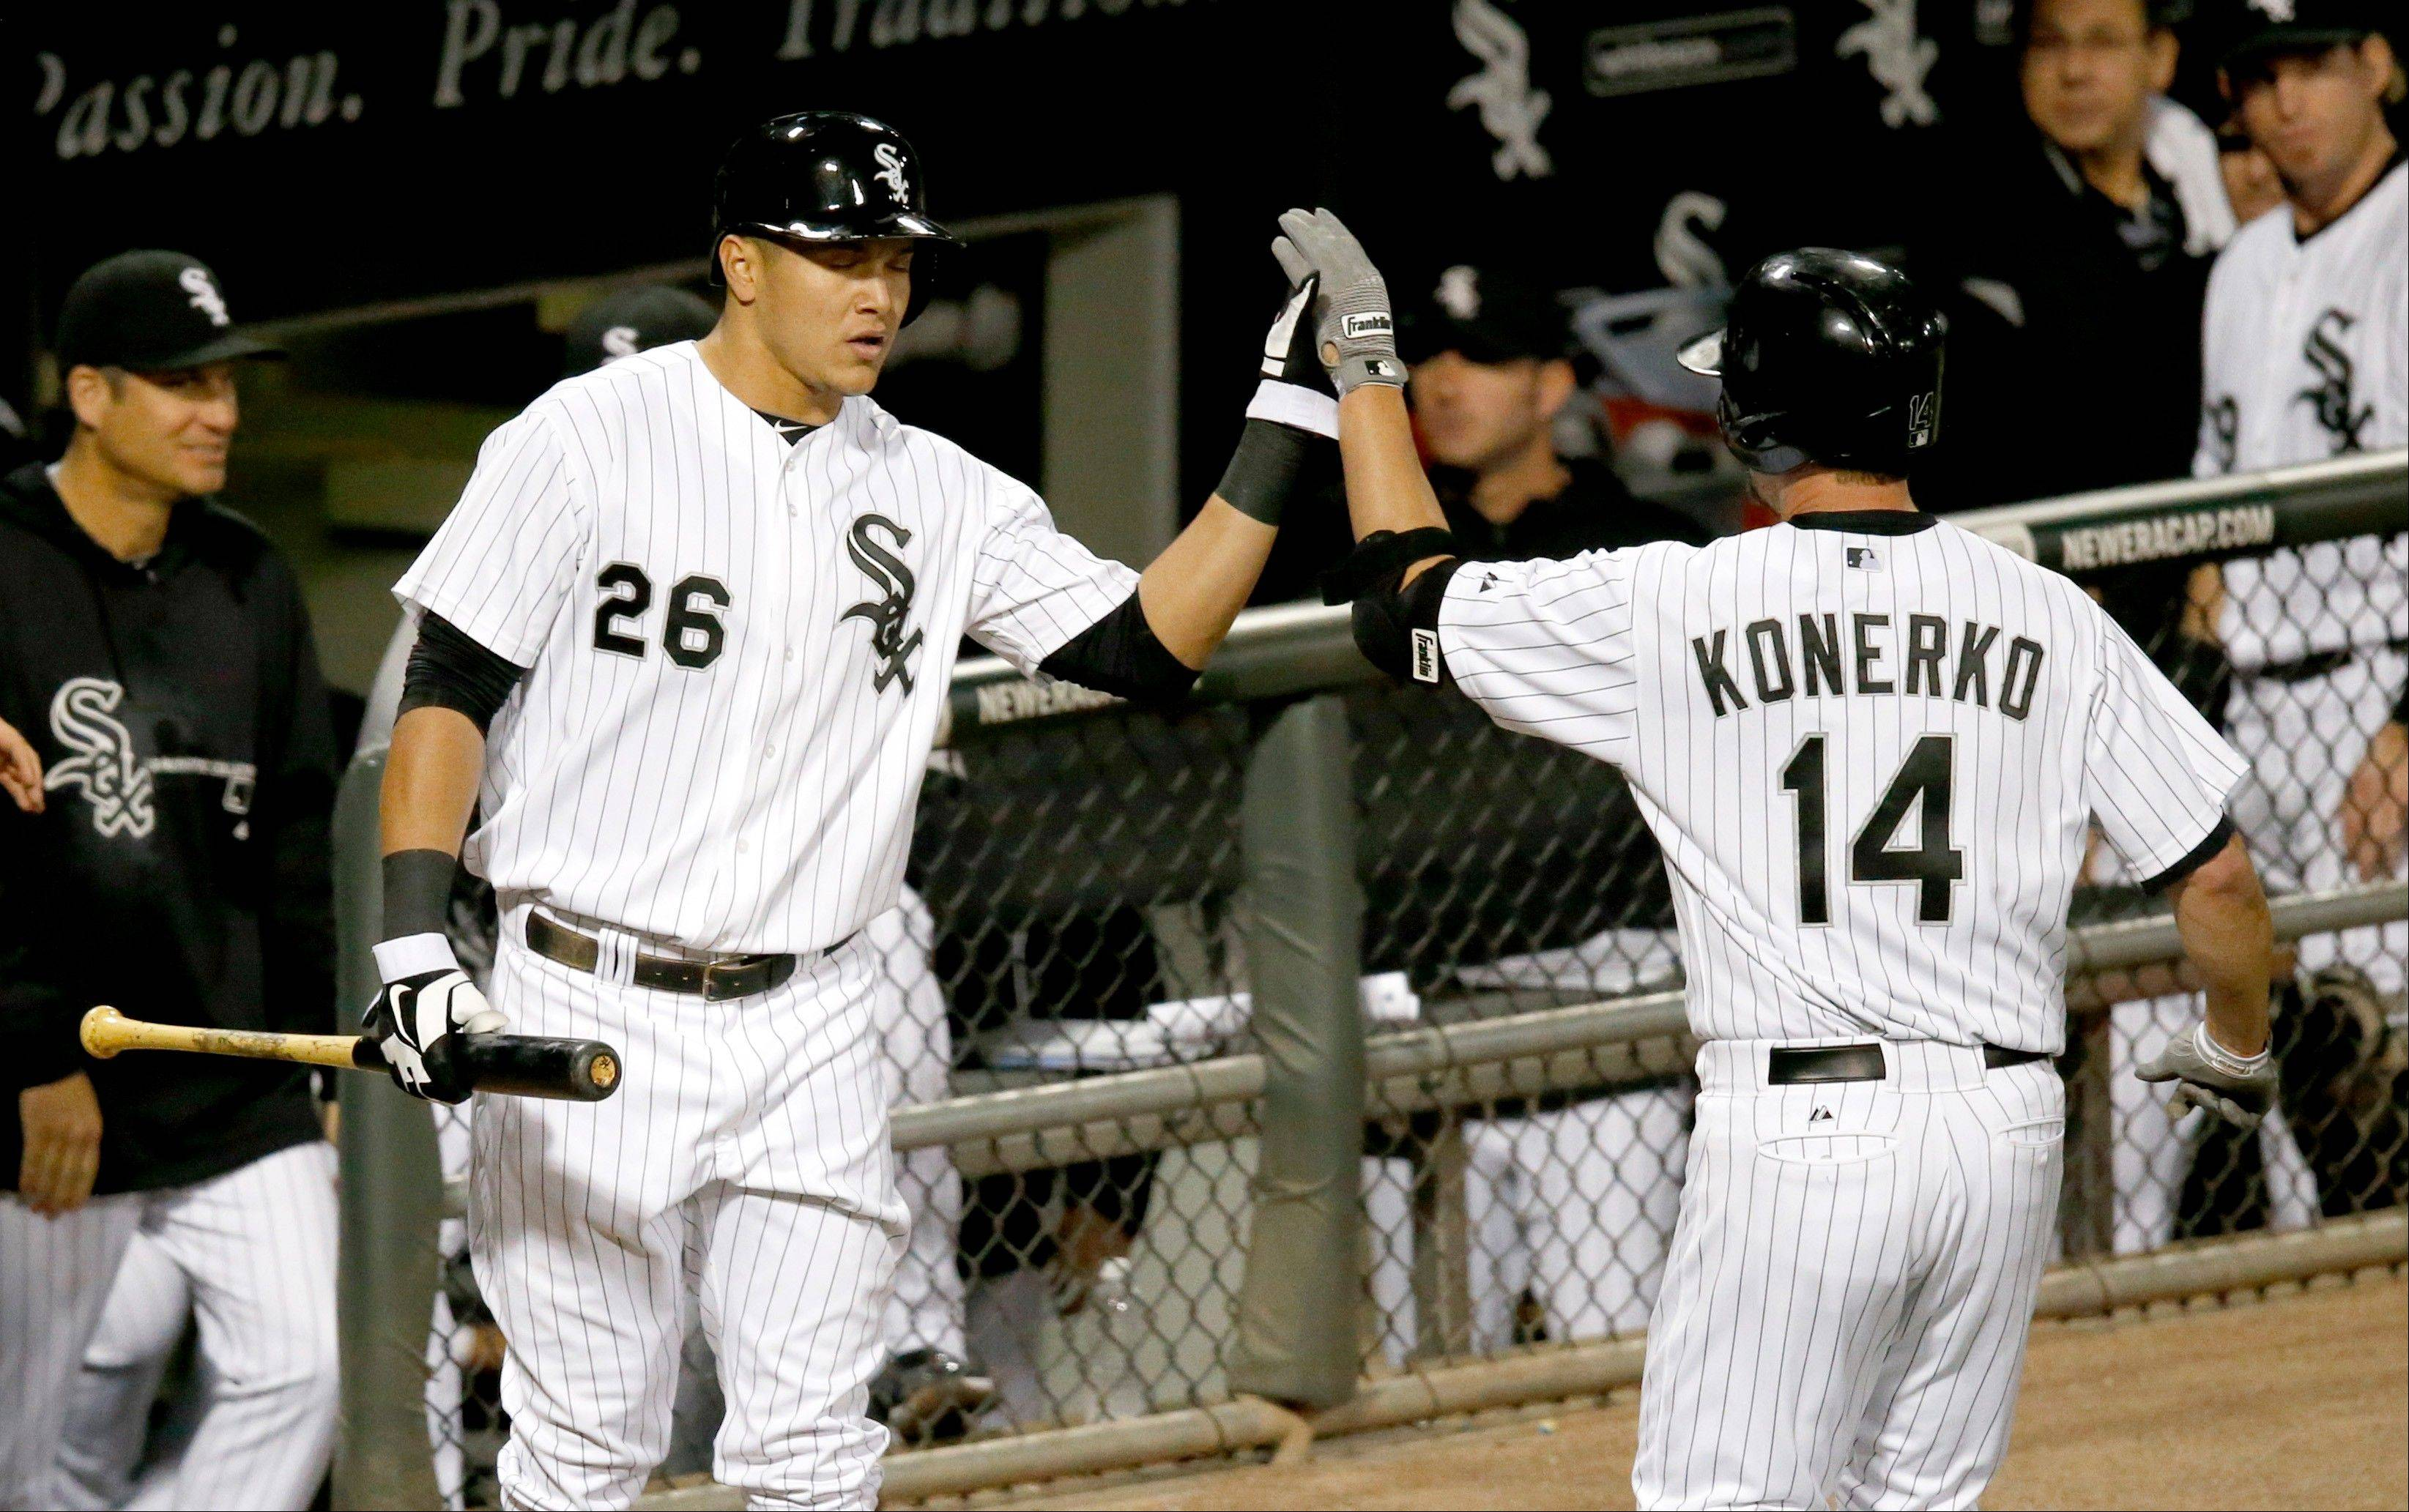 The White Sox� Avisail Garcia (26) greets Paul Konerko outside the dugout after Konerko�s home run off Royals starting pitcher Jeremy Guthrie in the second inning Thursday night at U.S. Cellular Field.